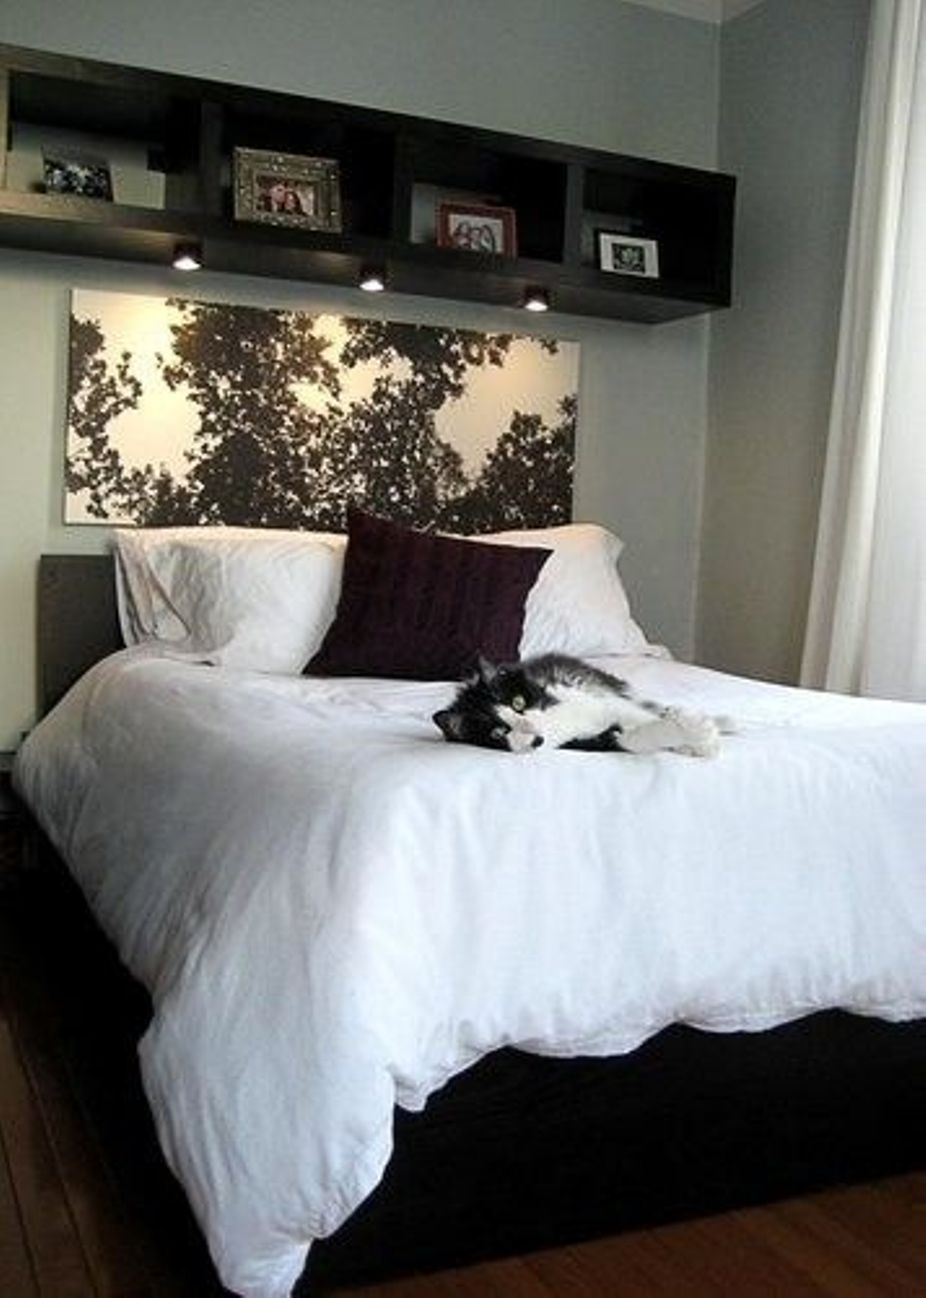 spacesaving cube storage ideas black beds hanging pictures